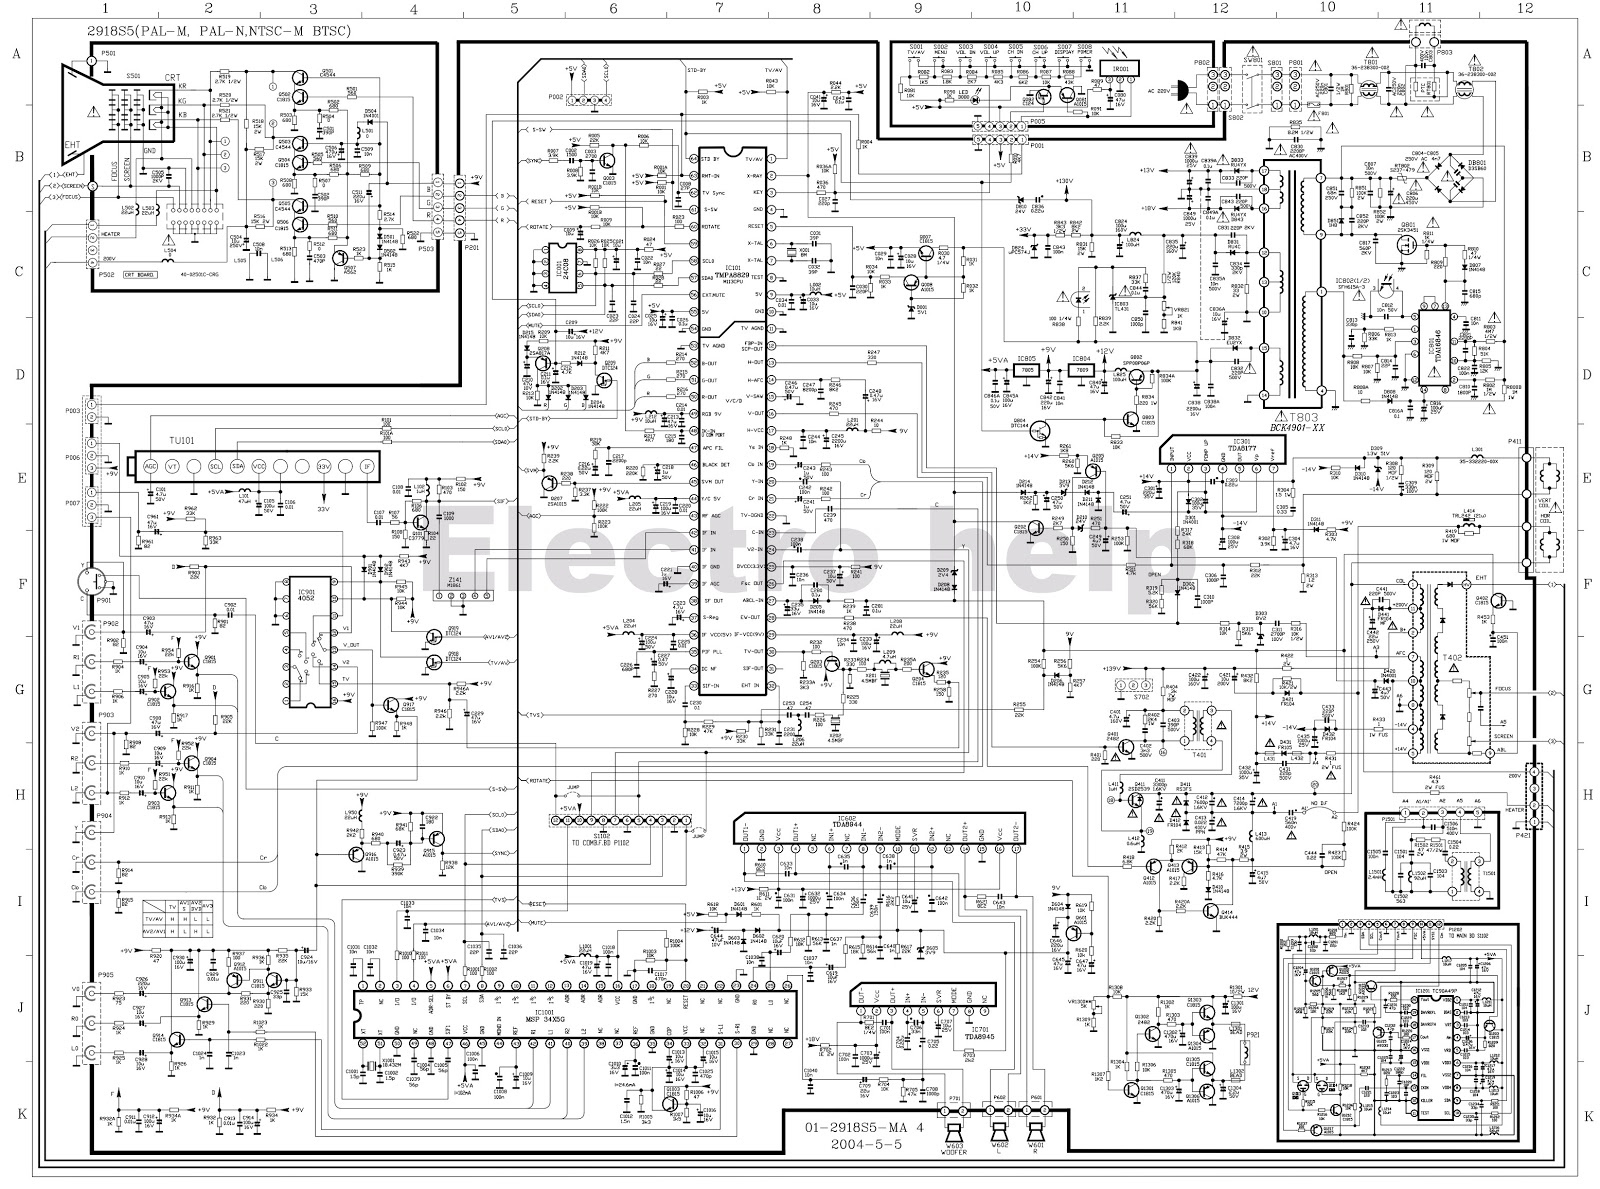 Schematic Diagrams: Colour TV kit Circuit Diagram